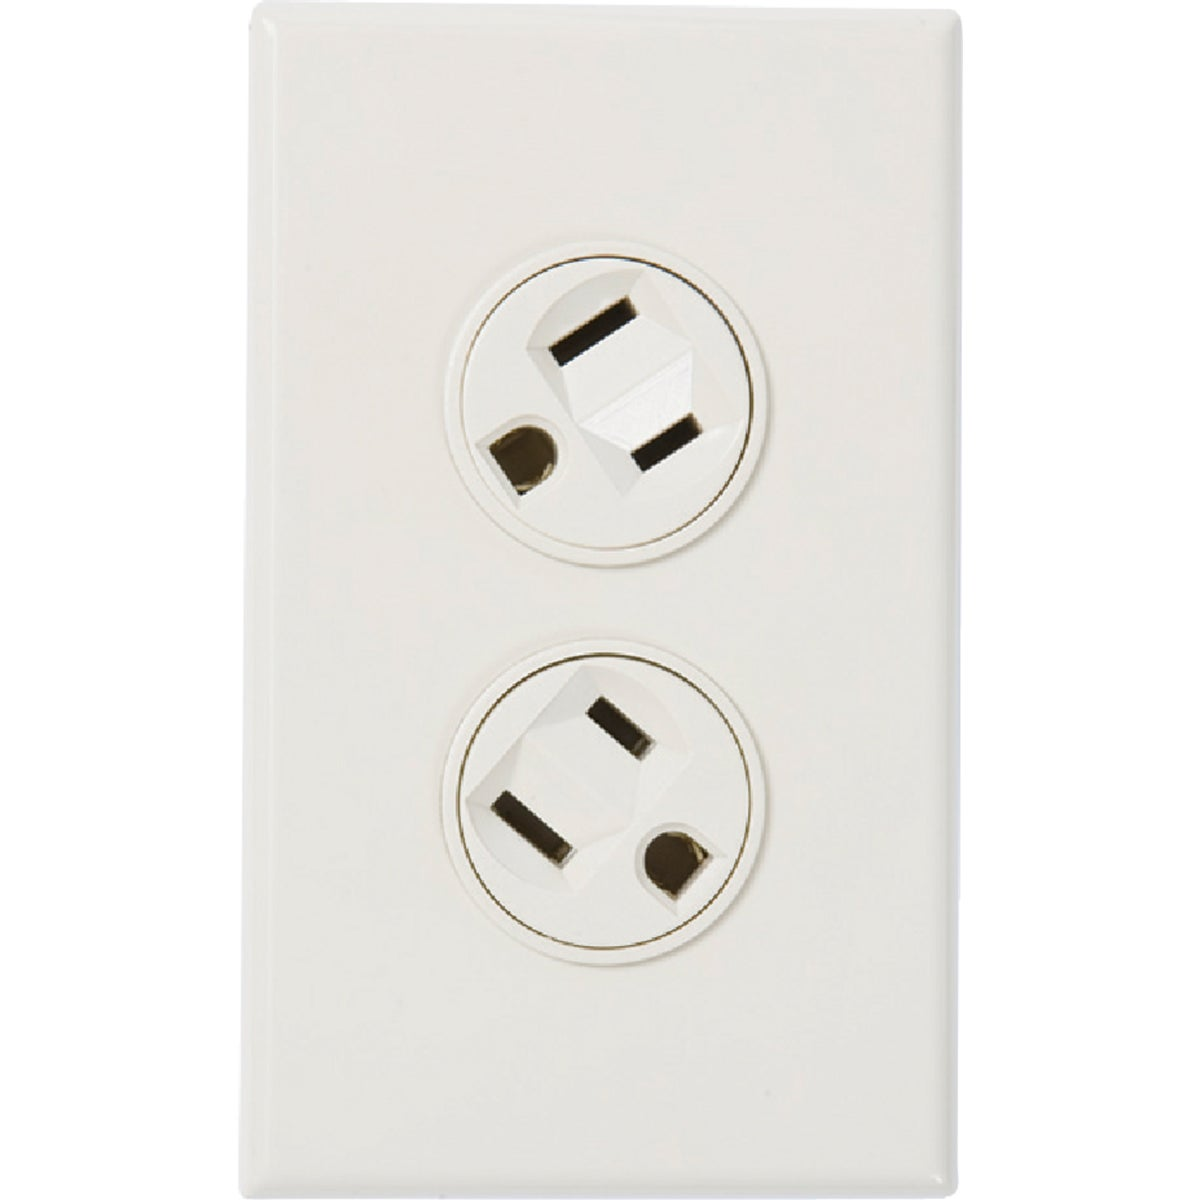 WHT ROTATE DUPLEX OUTLET - 36010-W by 360 Electrical